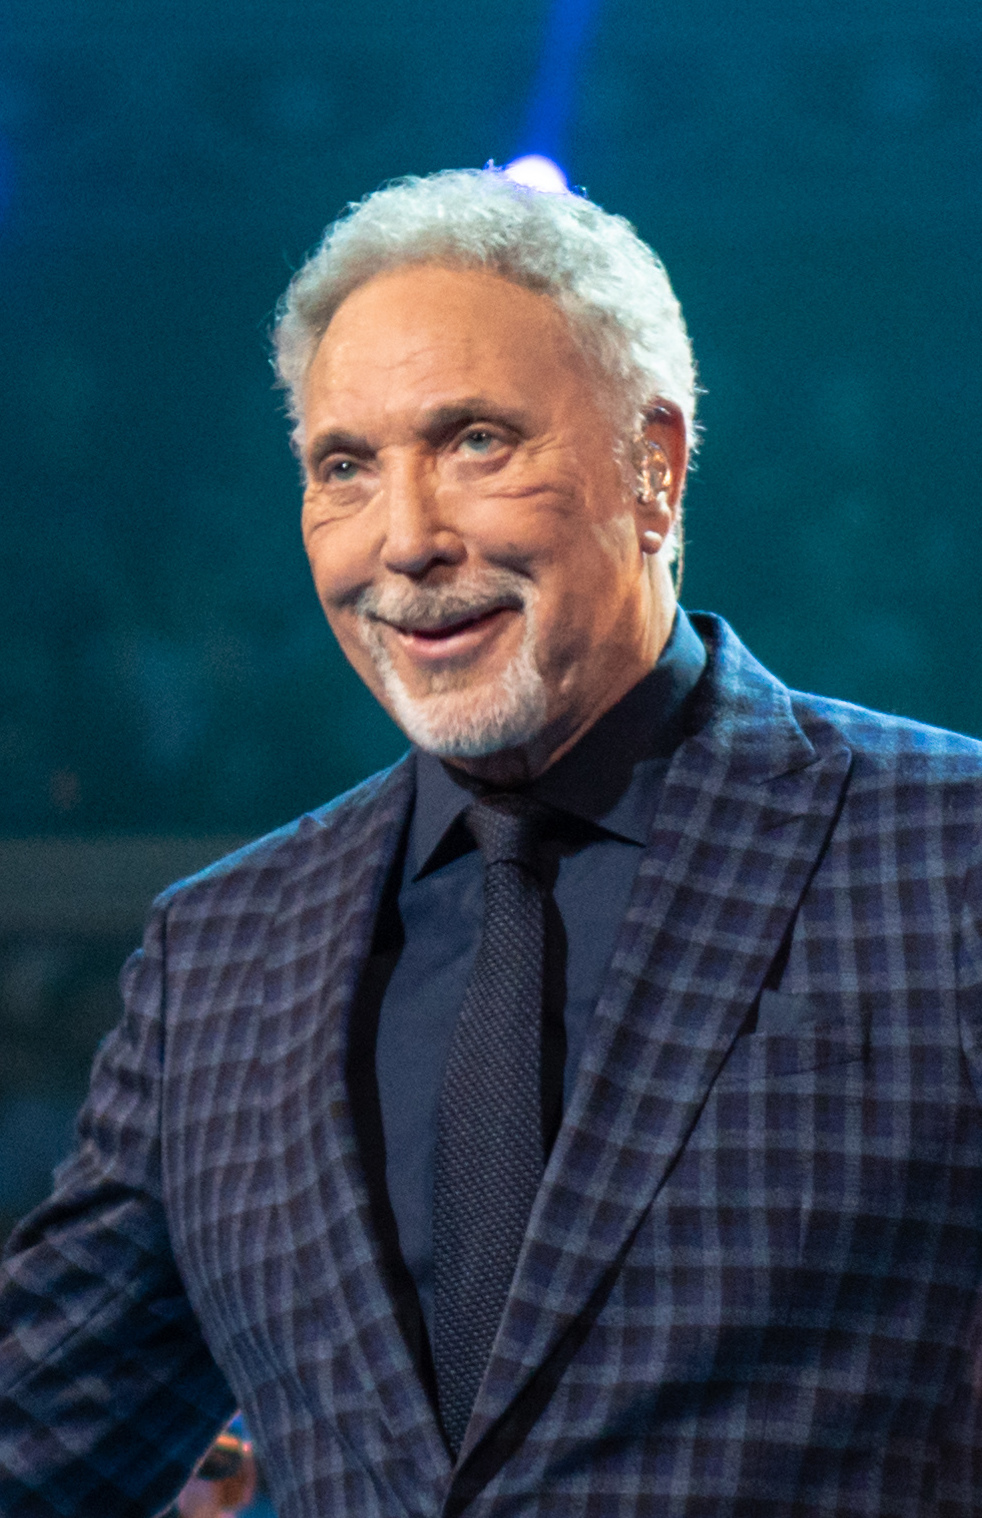 Entertainment News Roundup: Grassroots of Home: Tom Jones joins small-gig kick-start for UK live music scene; Female-led Cannes jury hopes for end to gender debate and more